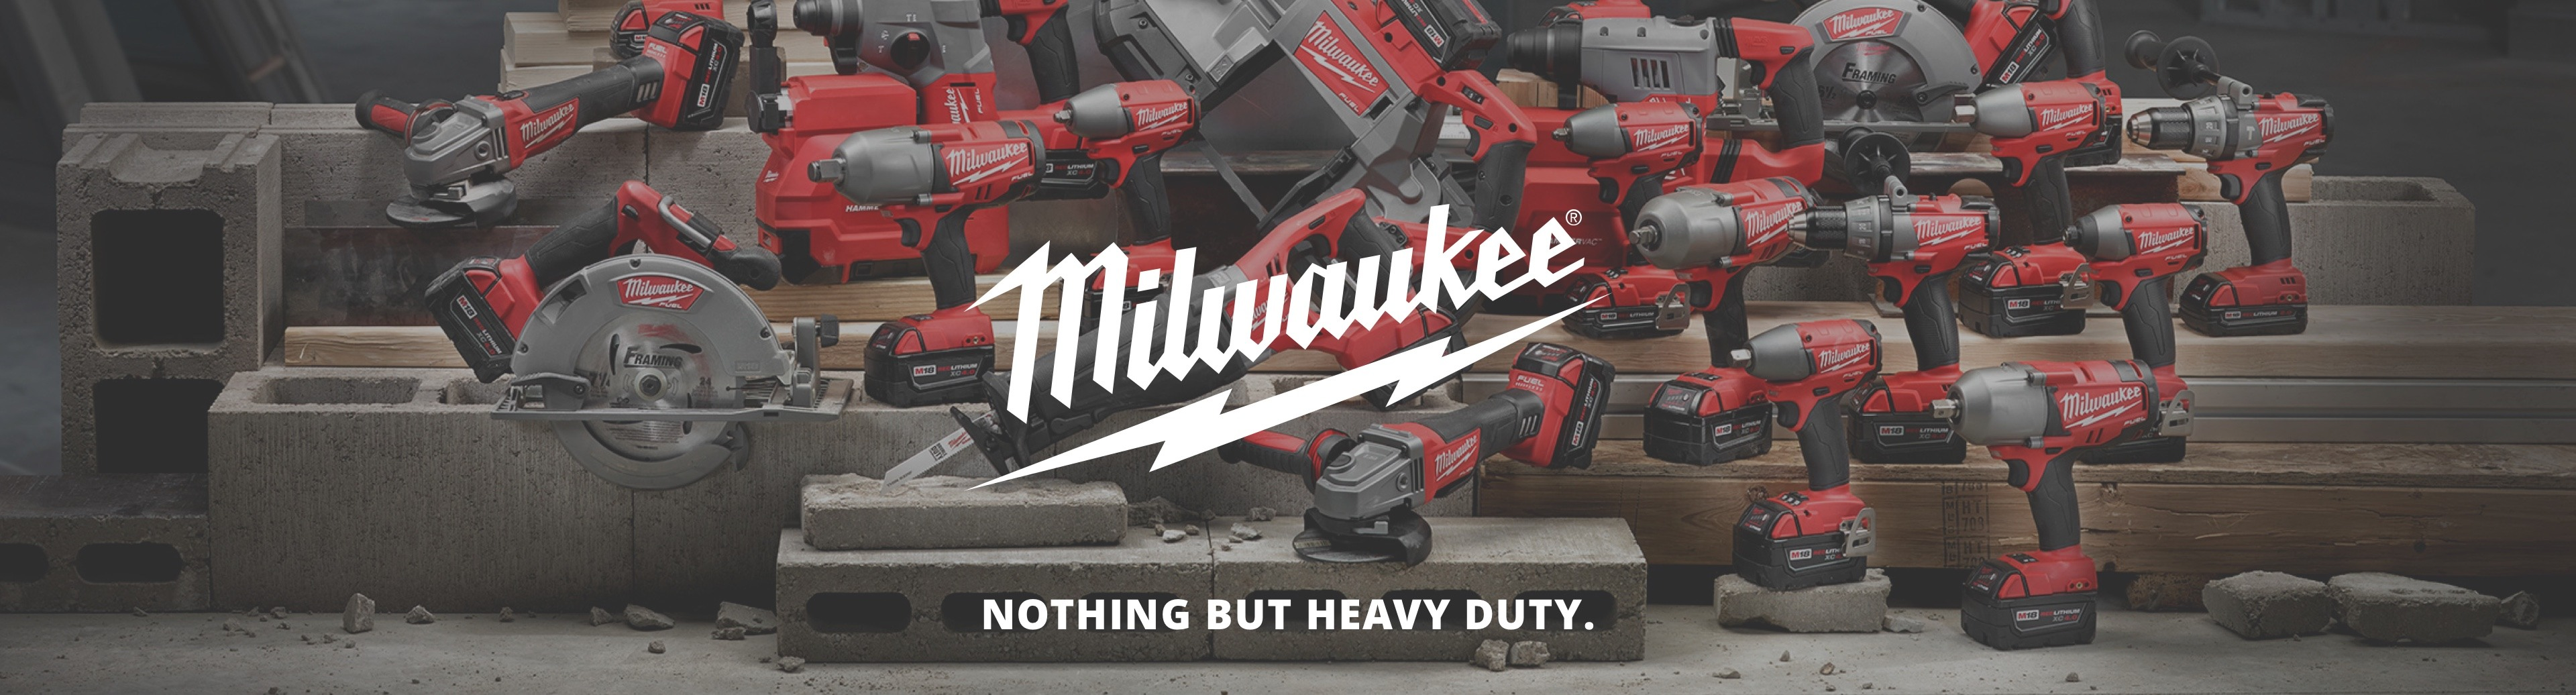 Milwaukee tools from Harrisons